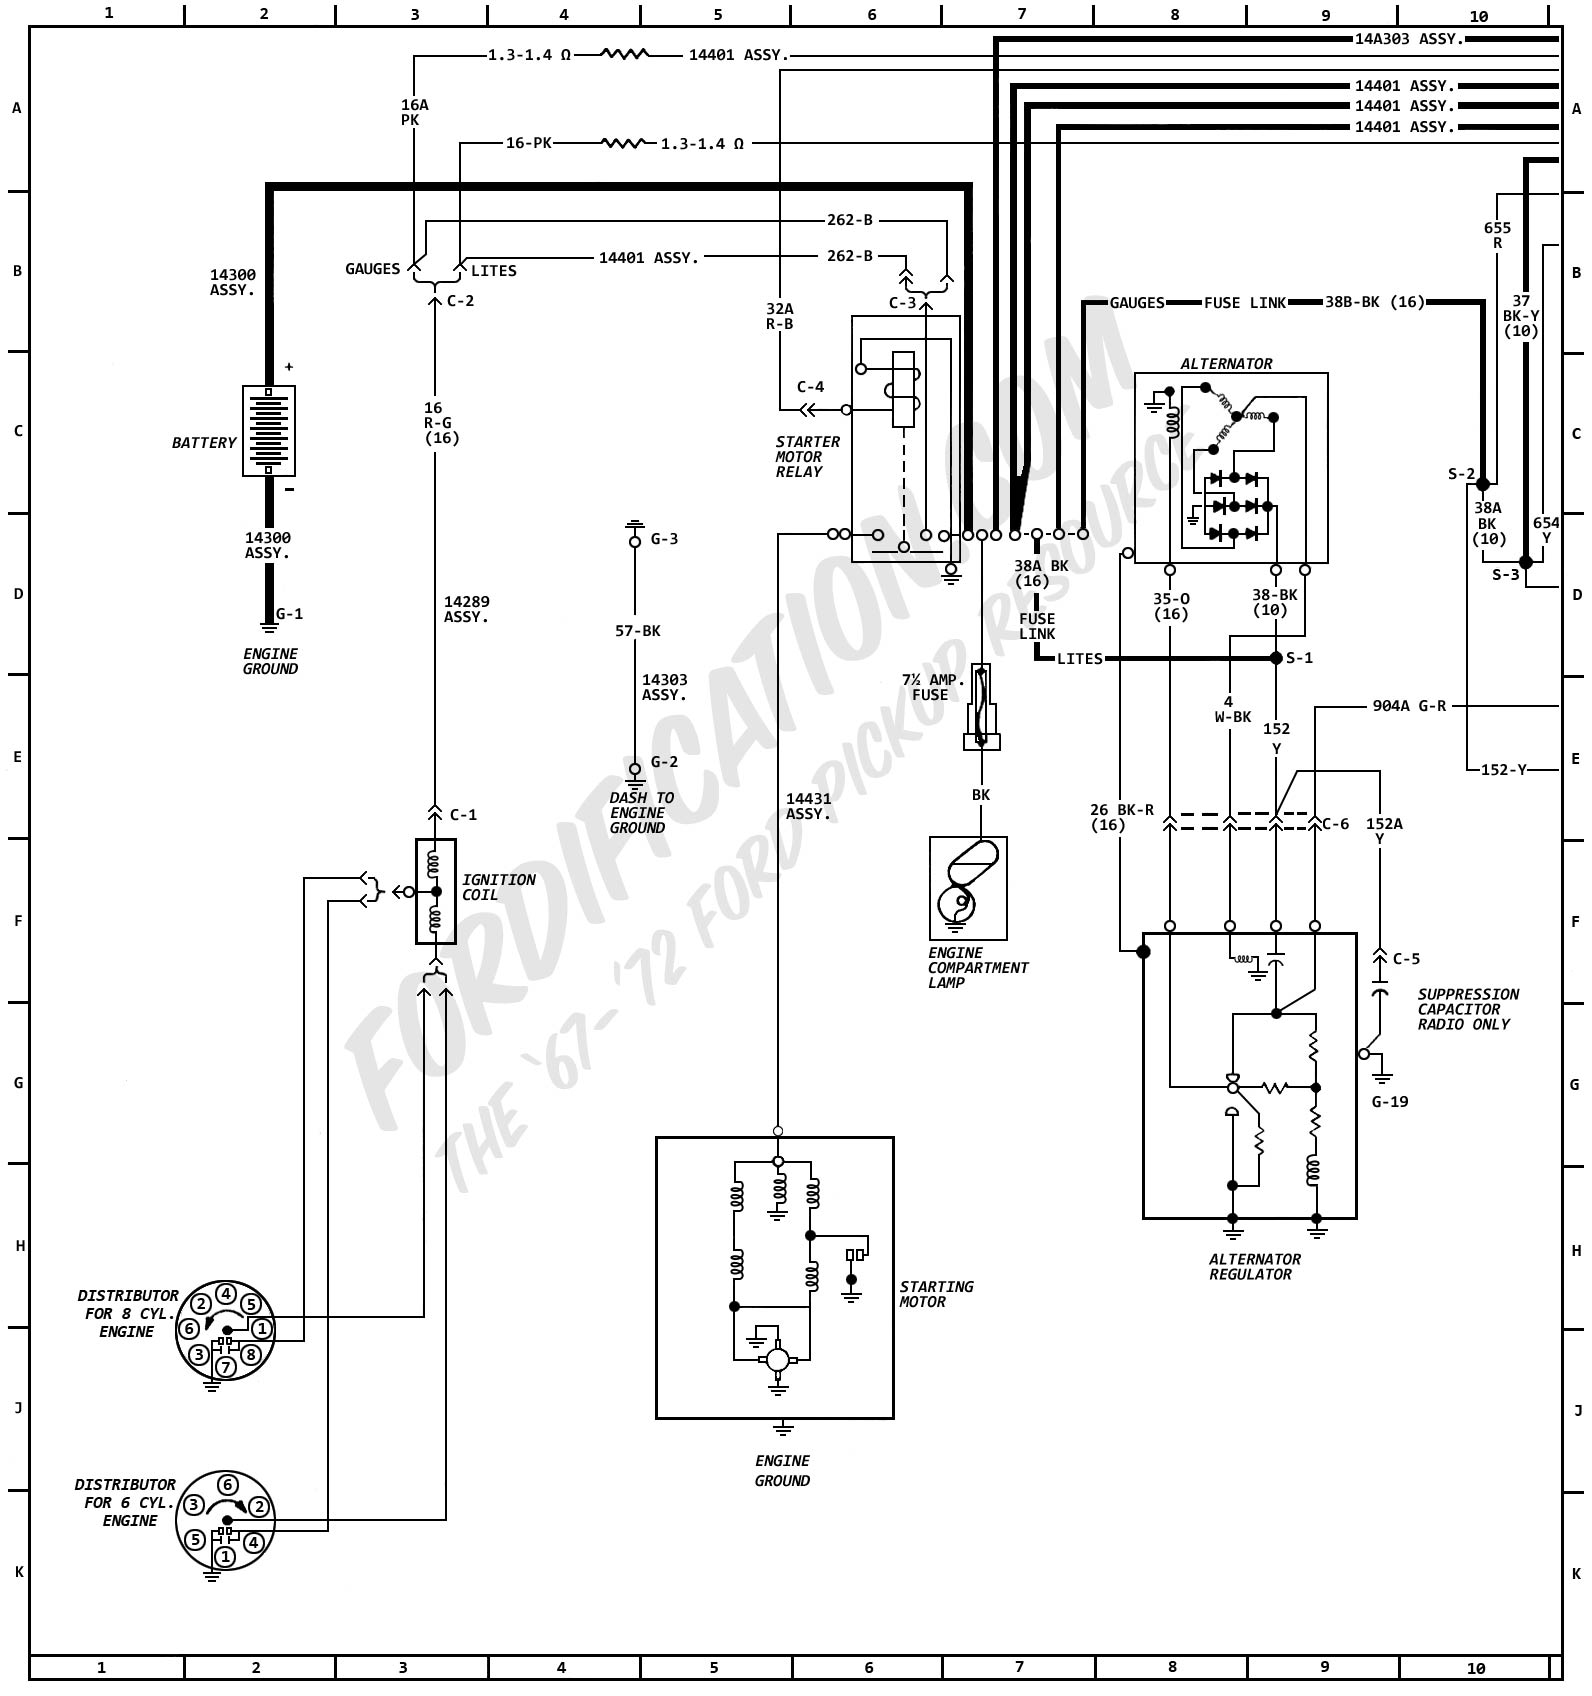 1972MasterWiring_01 1972 ford truck wiring diagrams fordification com ford ignition wiring diagram at webbmarketing.co